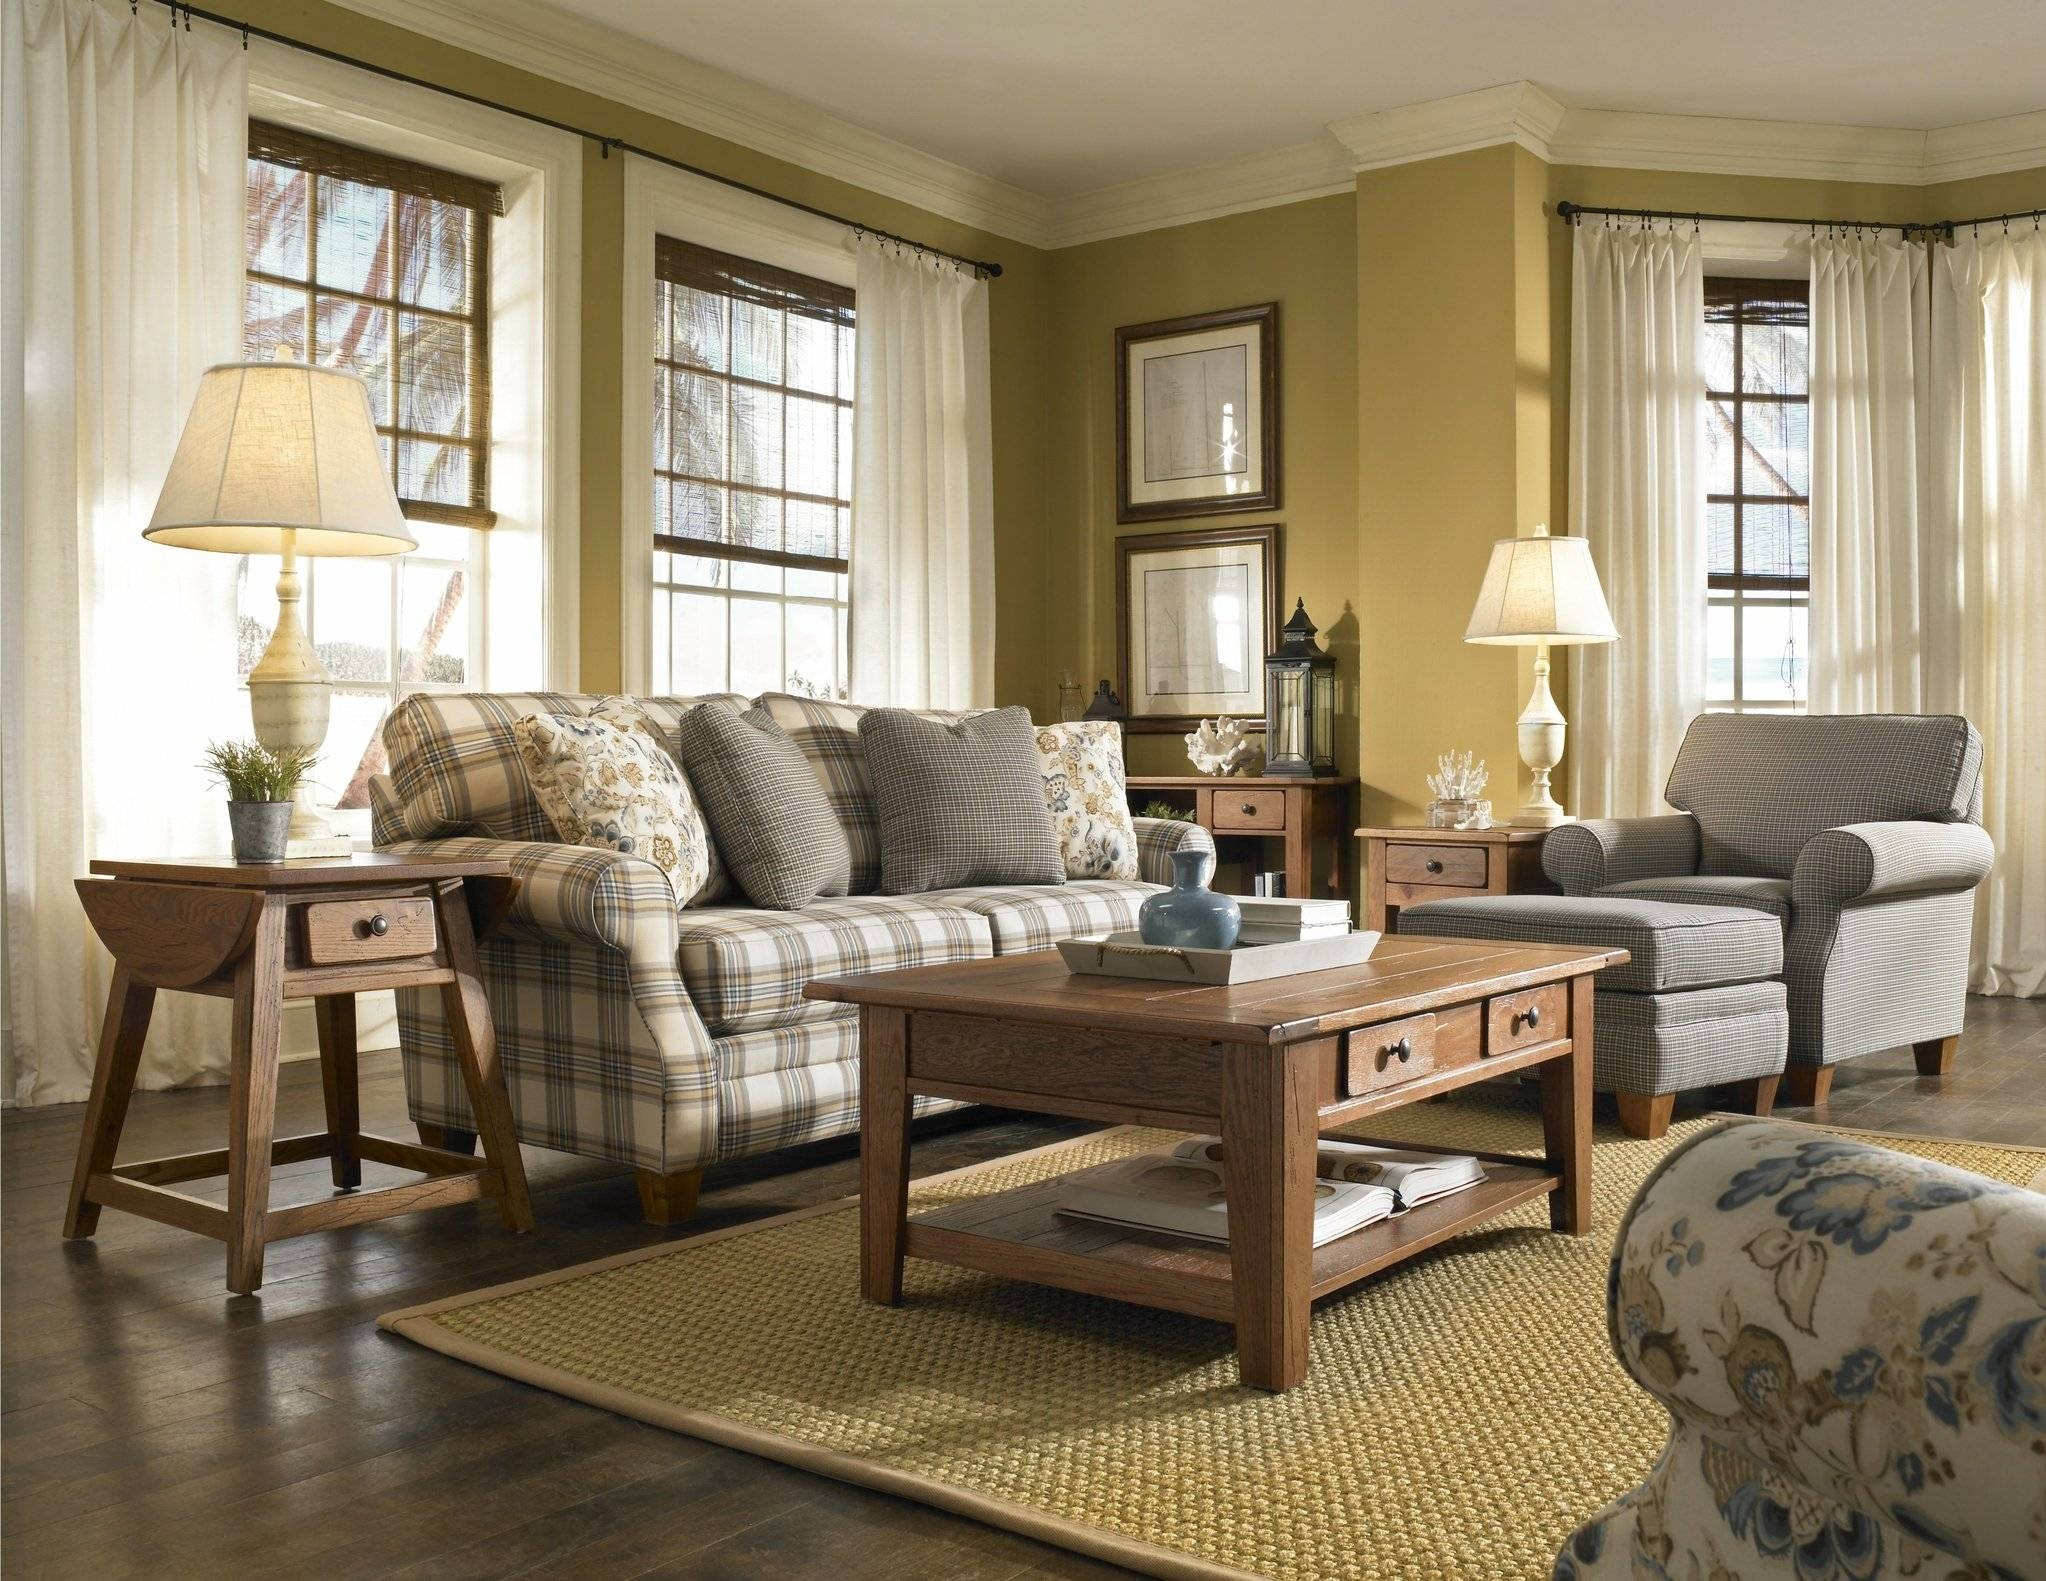 Country Sofas And Chairs | Tehranmix Decoration inside Country Style Sofas And Loveseats (Image 3 of 30)